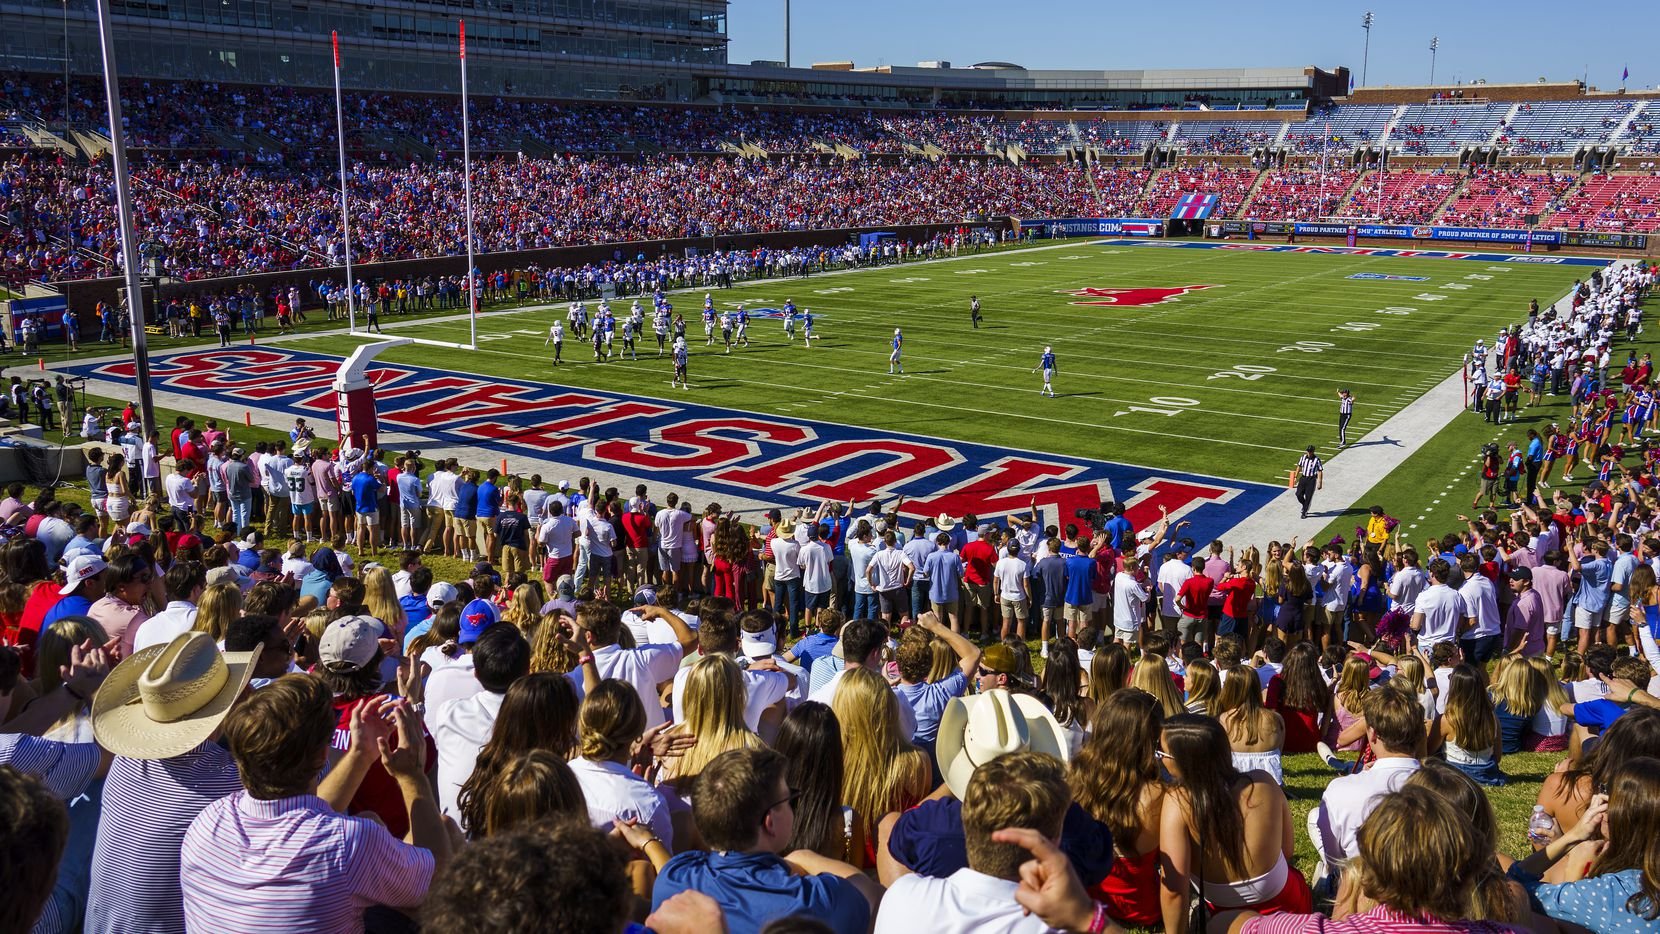 FILE - Fans watch during the first half of a football game between SMU and Temple at Ford Stadium on Saturday, Oct. 19, 2019, in Dallas.